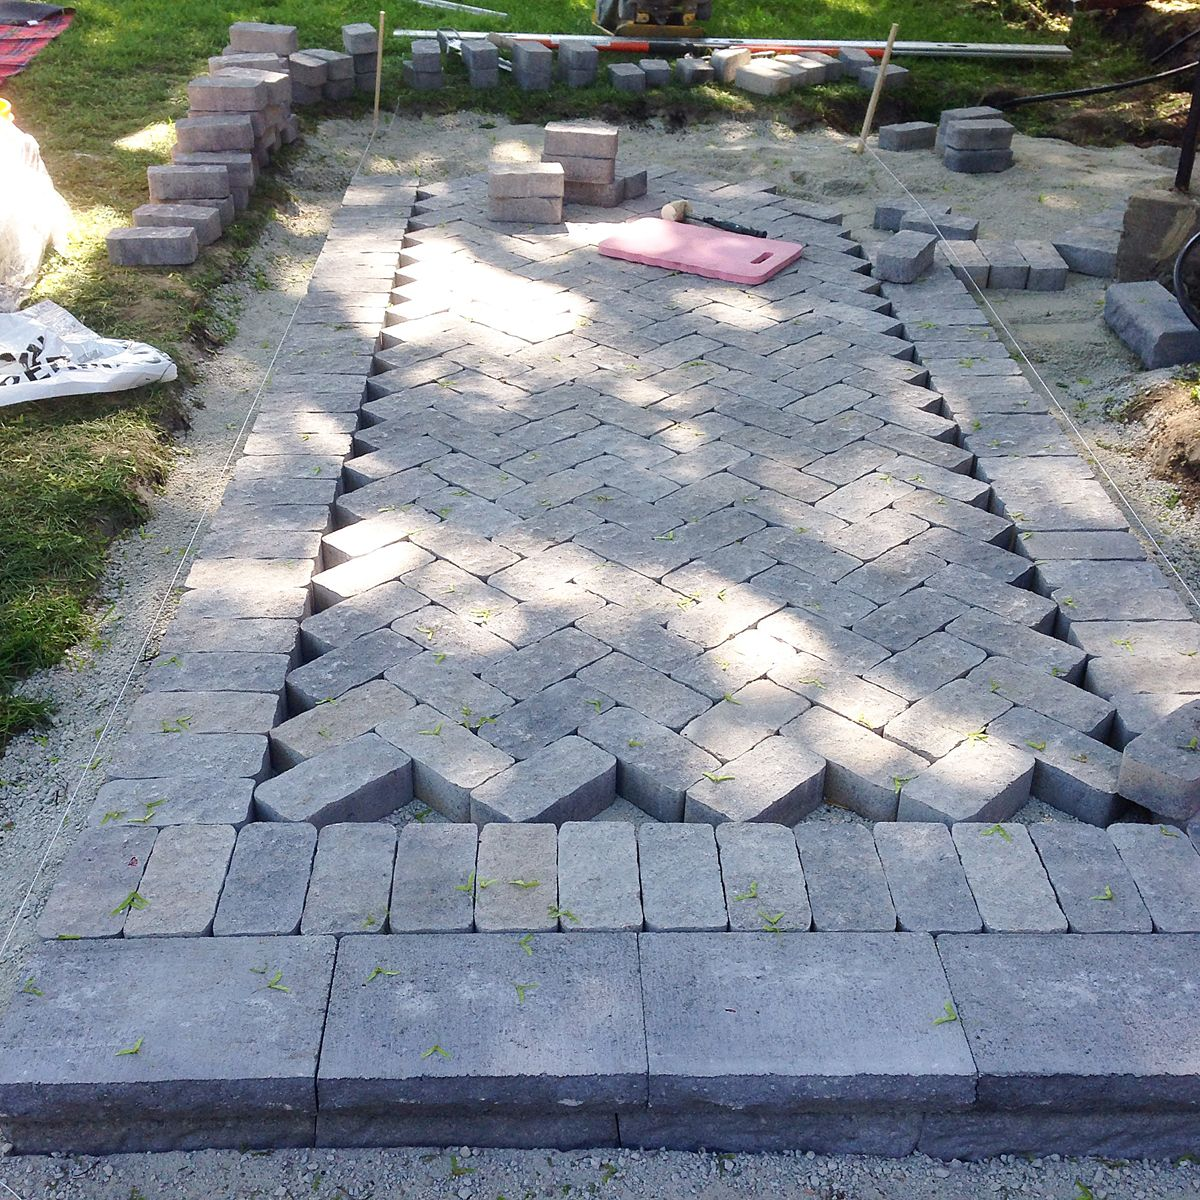 Ramblingrenovators.ca | How To Build A Walkway With Pavers, Herringbone  Walkway